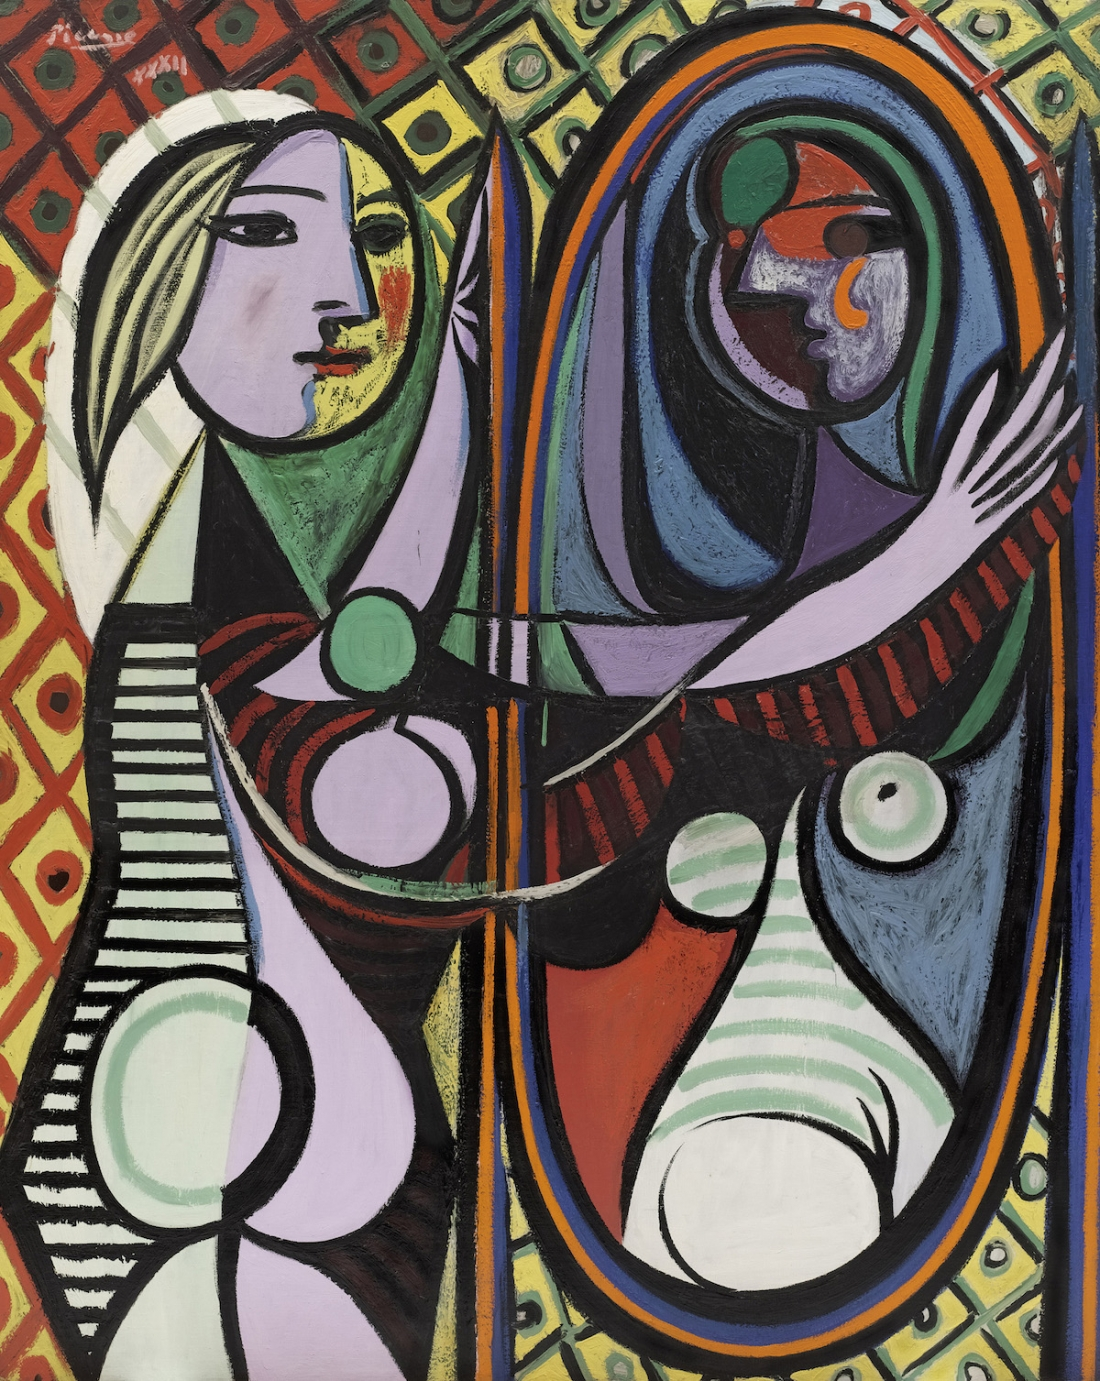 Pablo Picasso Girl before a Mirror (Jeune fille devant un miroir) 1932 Oil paint on canvas 1623 x 1302 mm The Museum of Modern Art, New York. Gift of Mrs. Simon Guggenheim 1937 © Succession Picasso/ DACS London, 2017